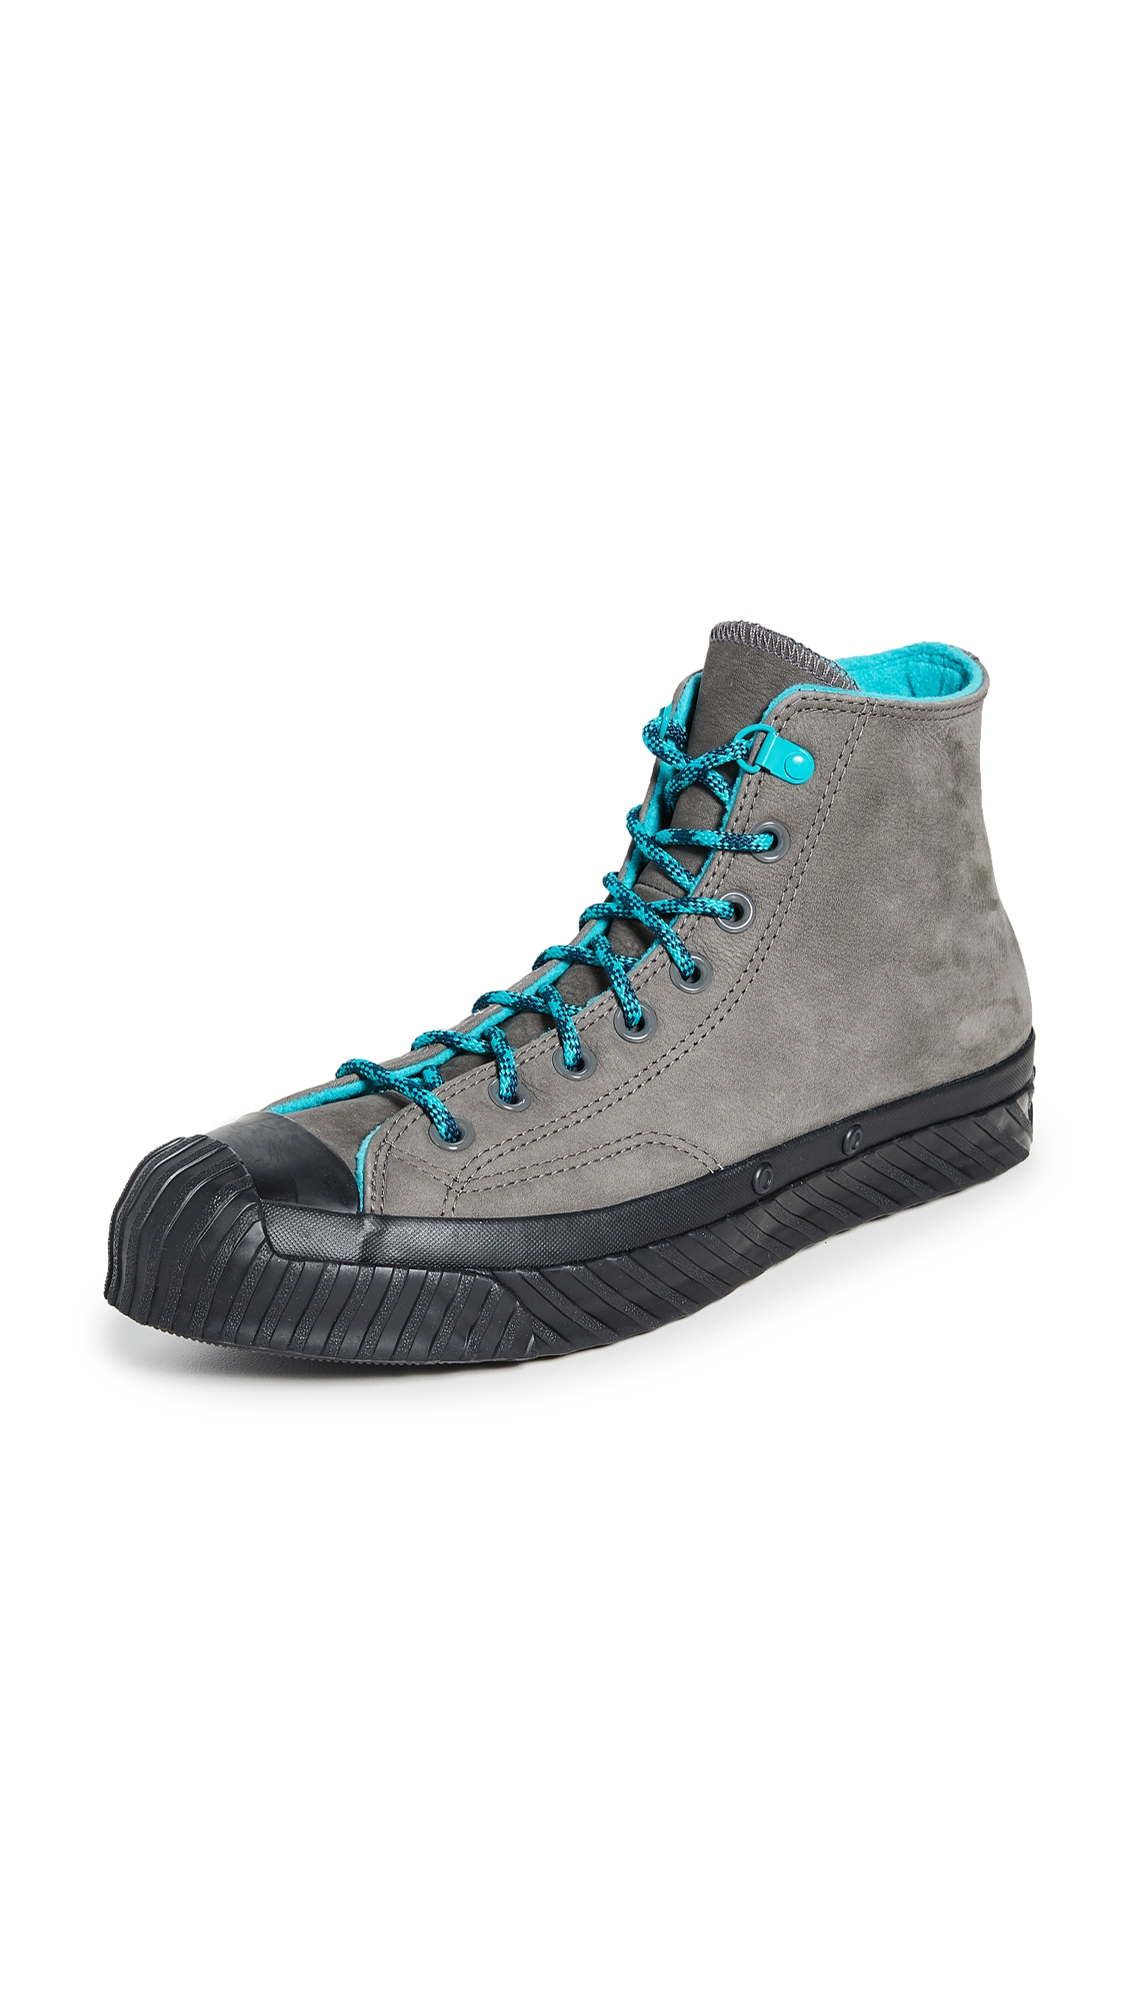 Chuck 70 Bosey High Top Sneakers In Carbon Greyturbo Greenblack